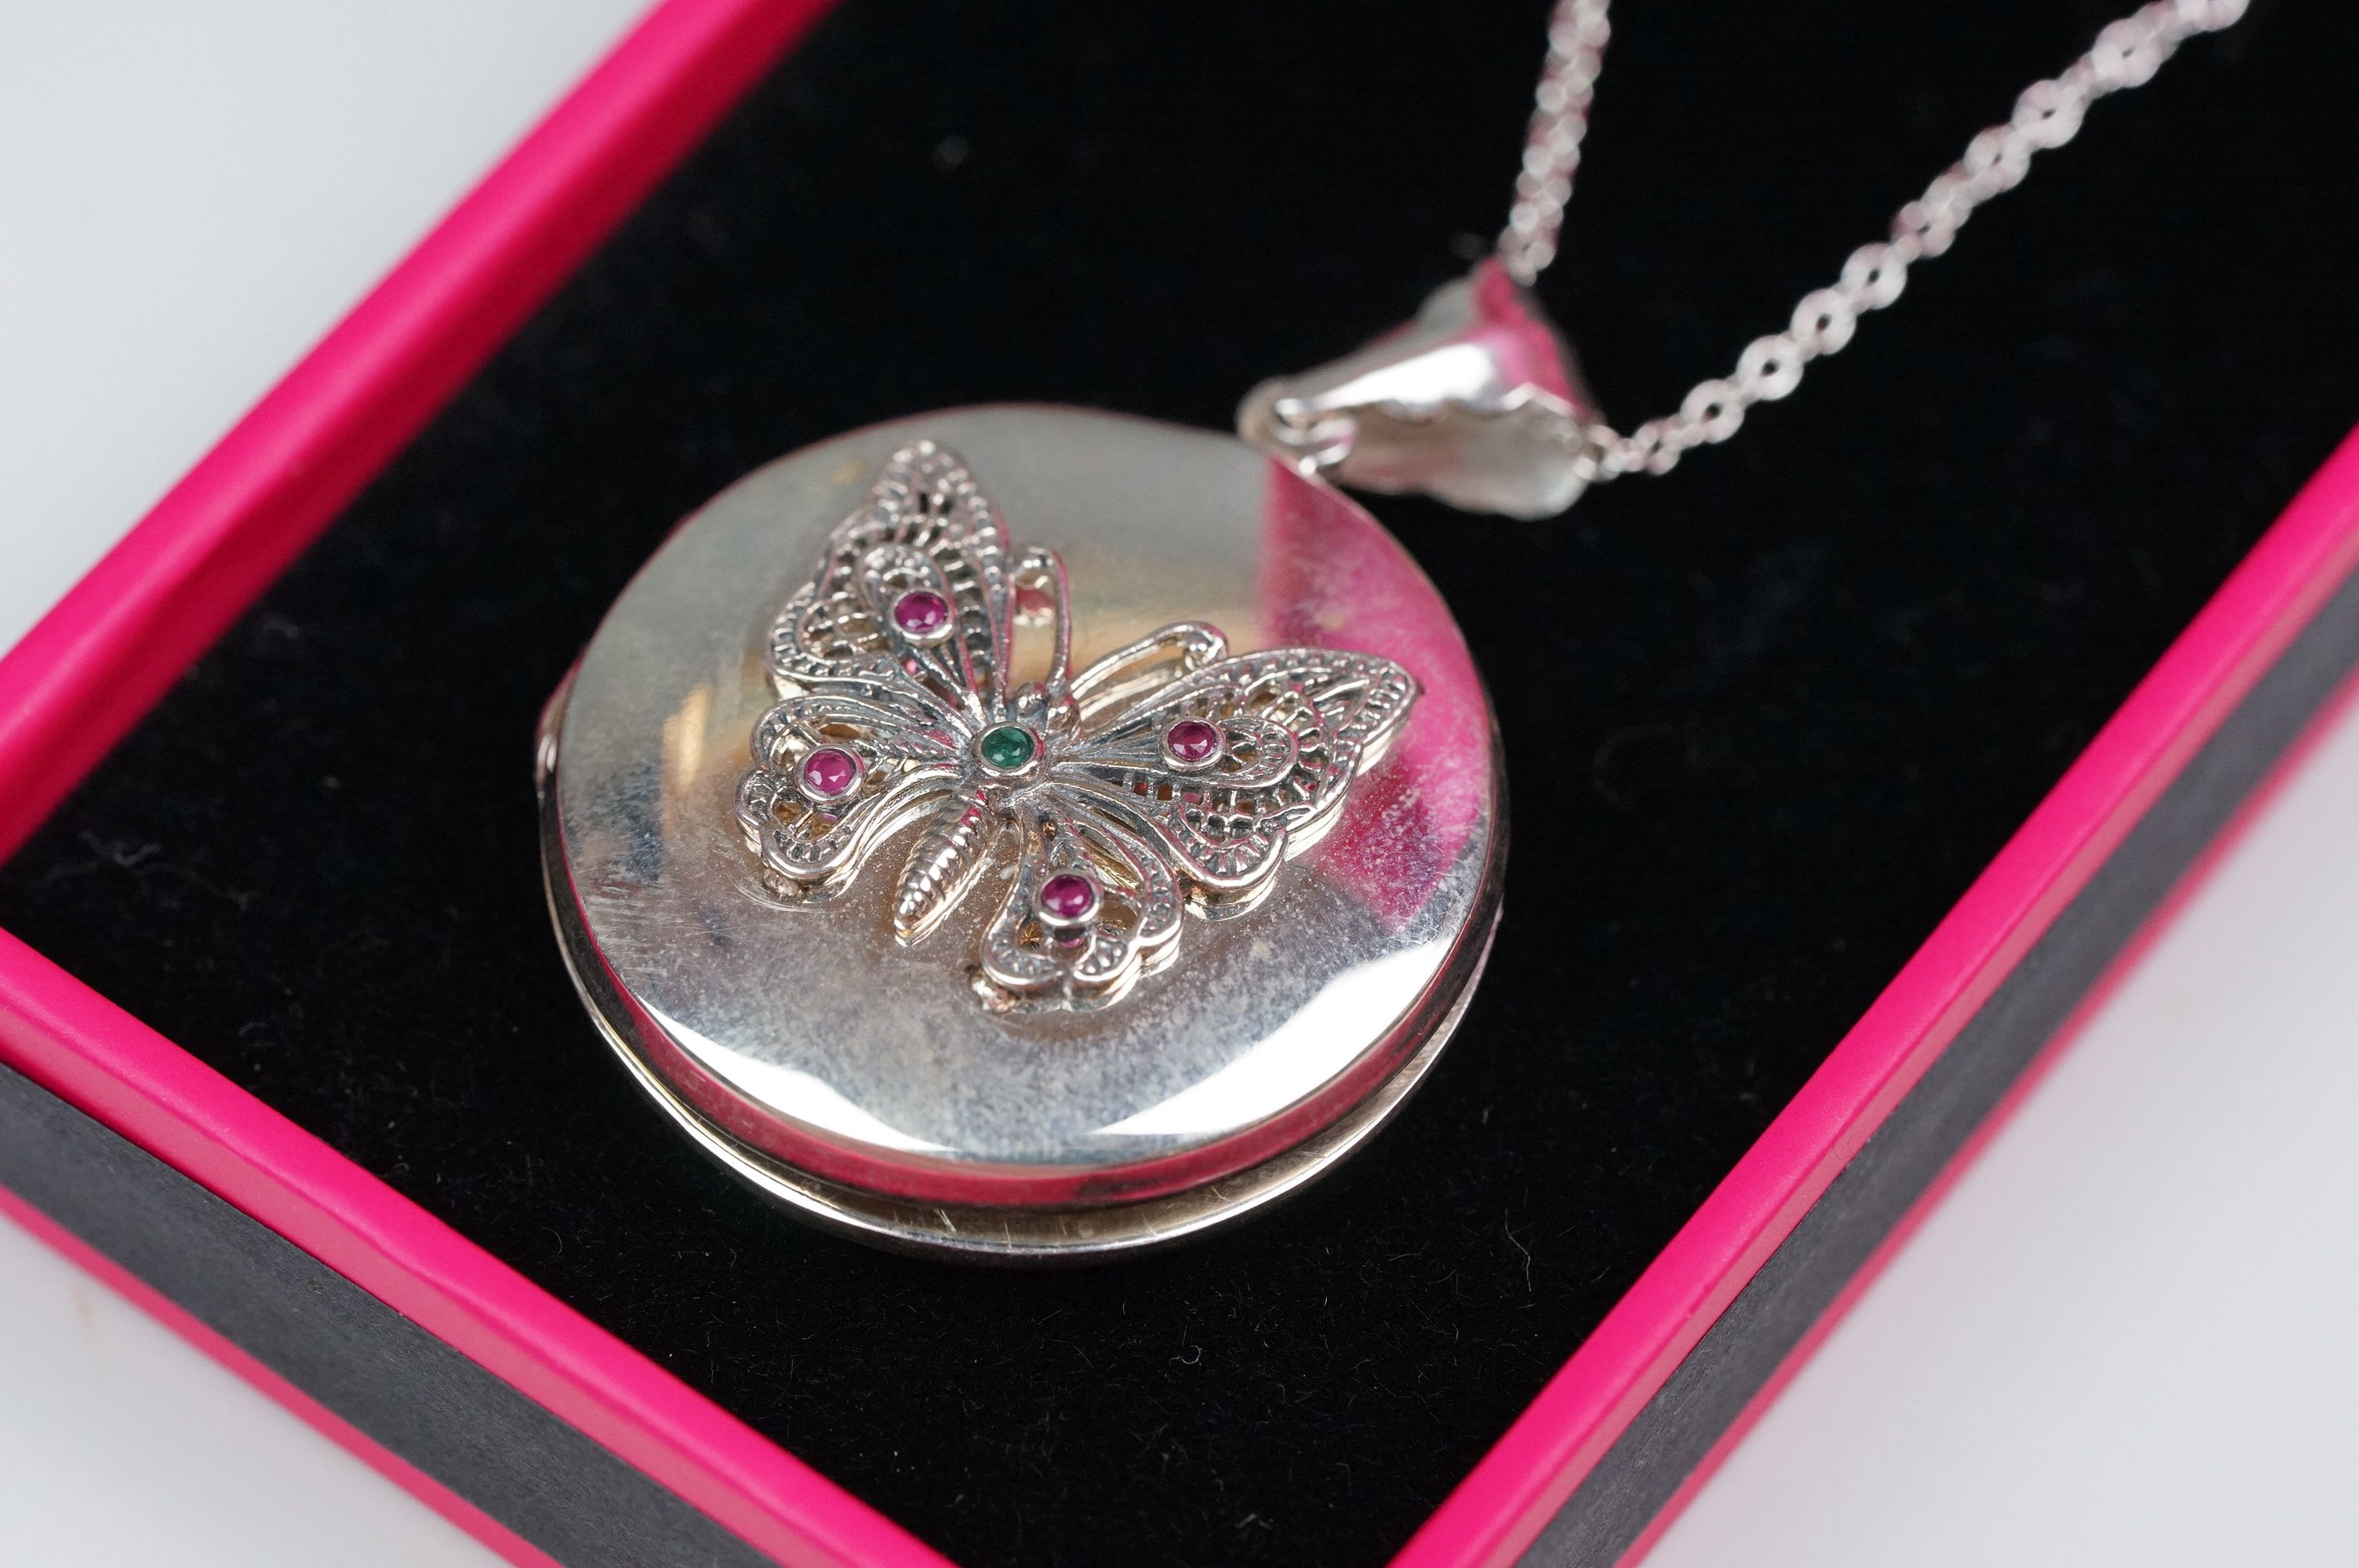 Silver butterfly locket on a silver chain - Image 2 of 4